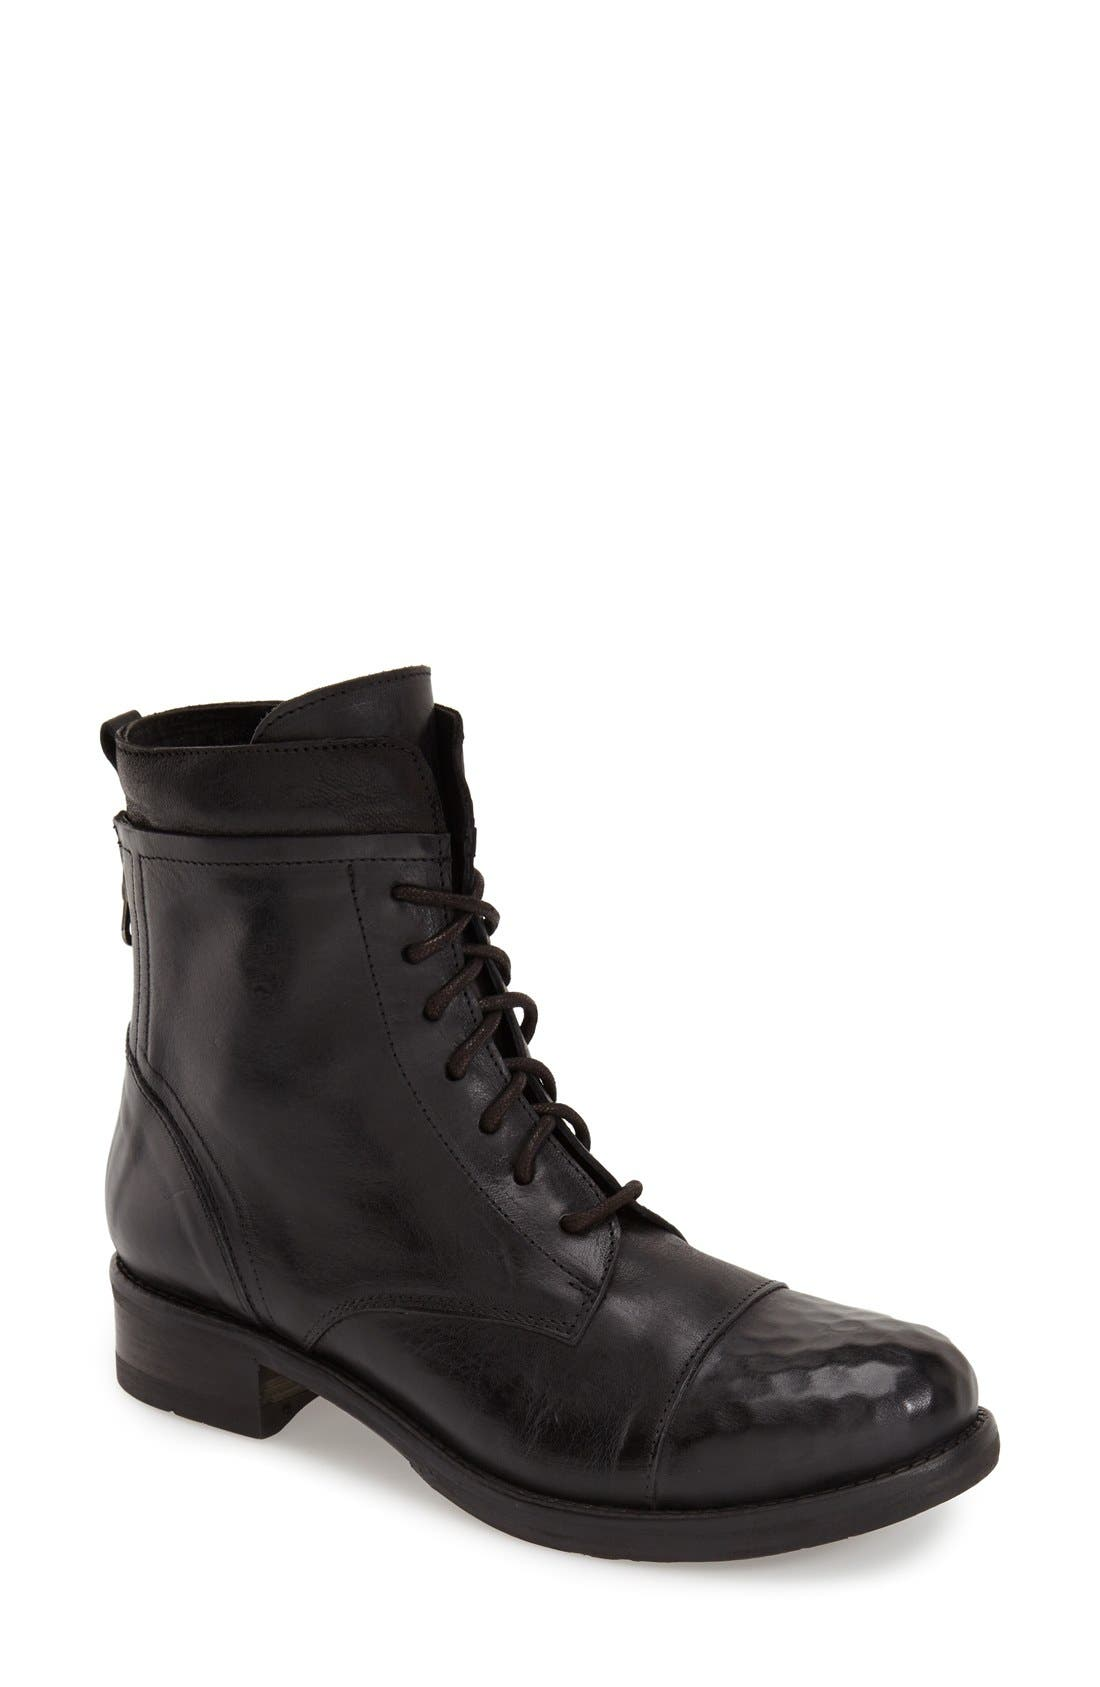 KBR Lace-Up Boot, Main, color, 001